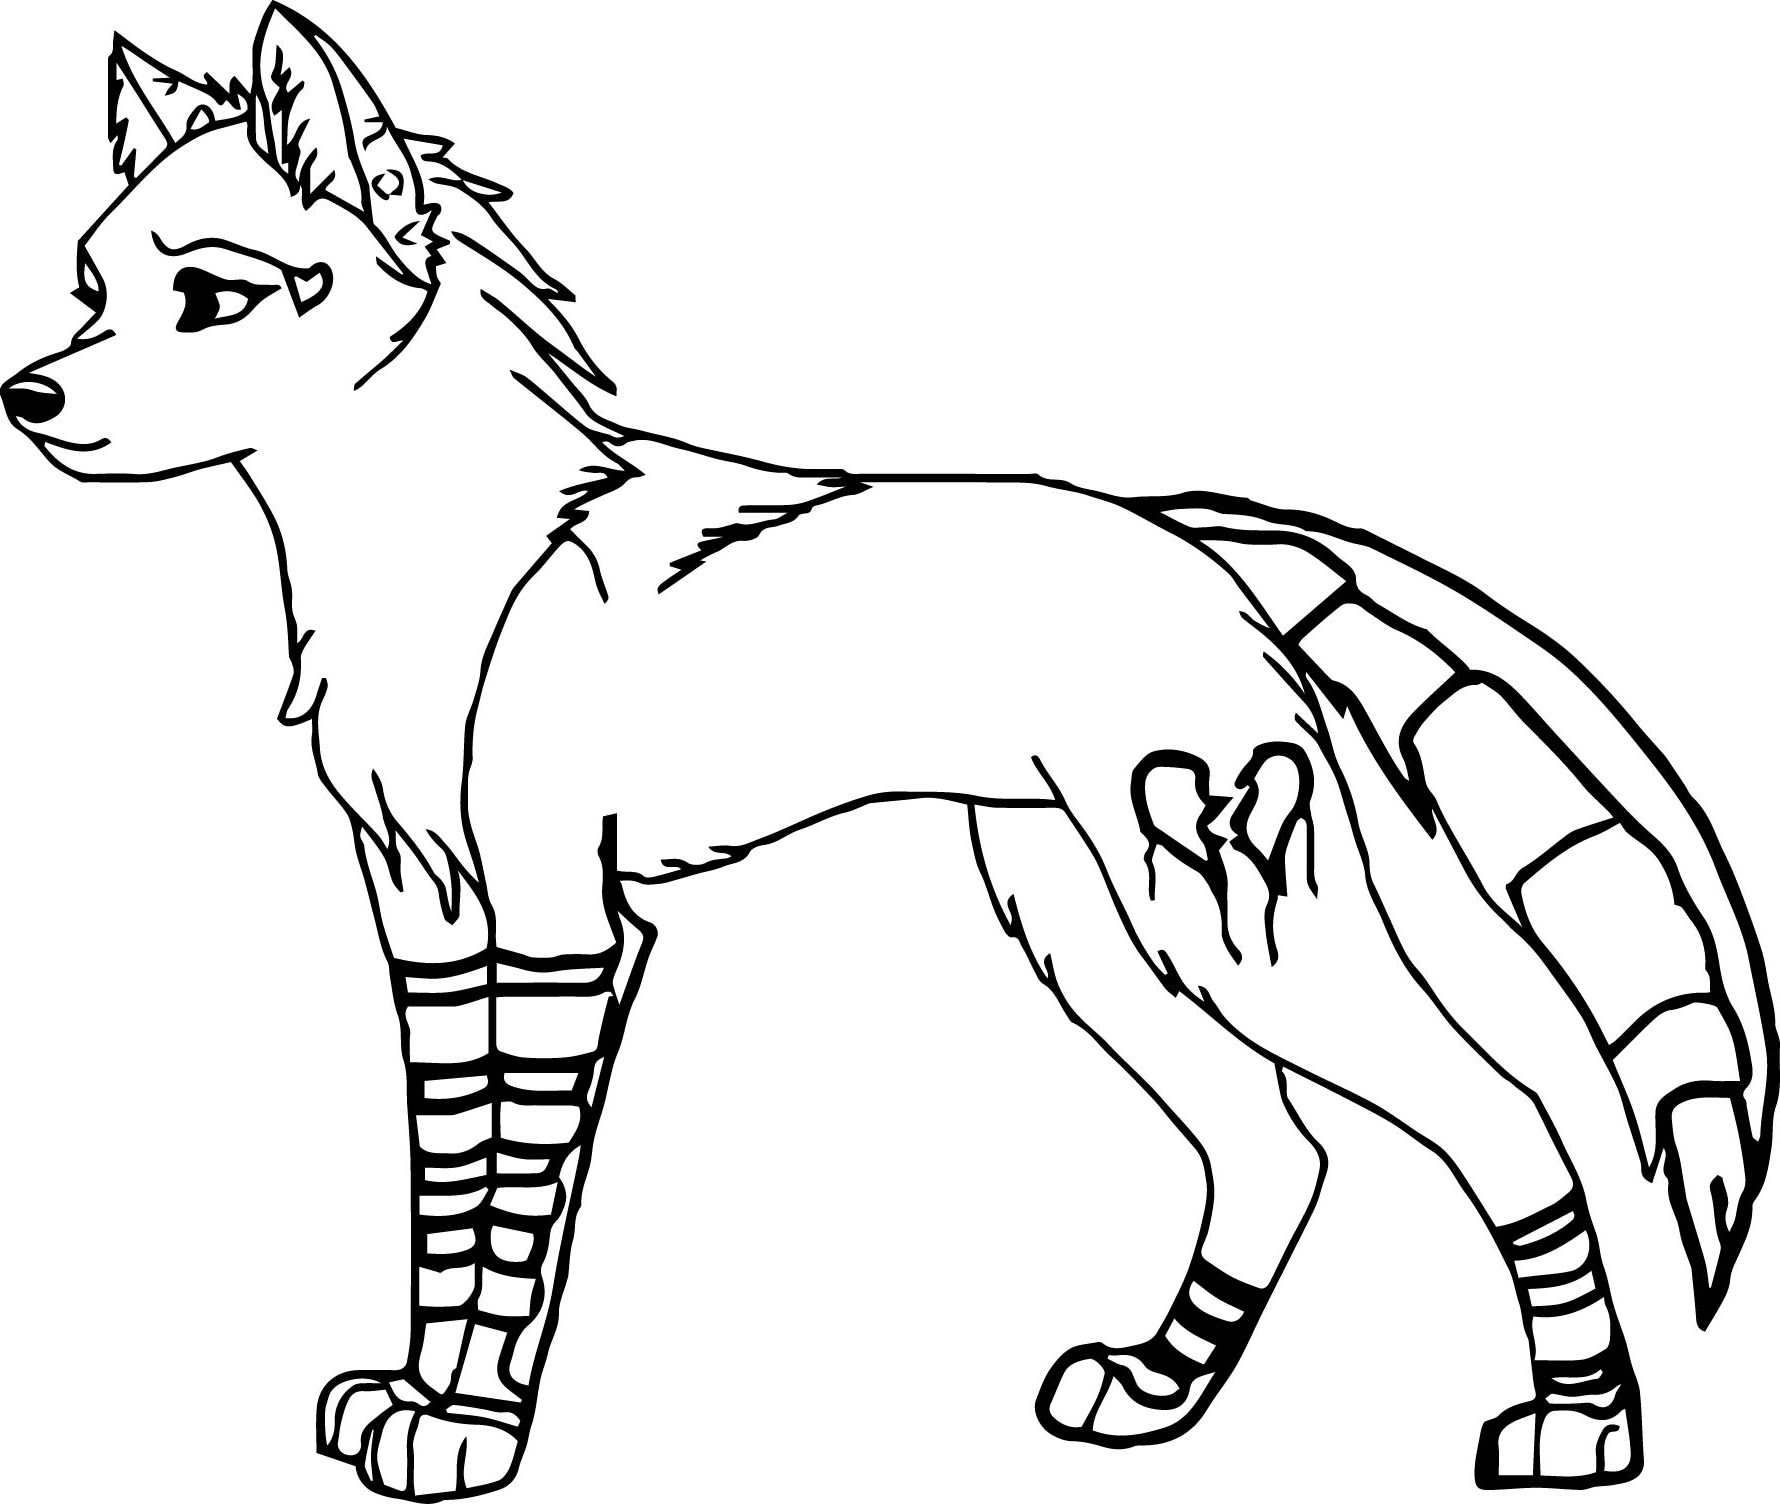 Cool Wolf Coloring Pages at GetColorings.com   Free ...